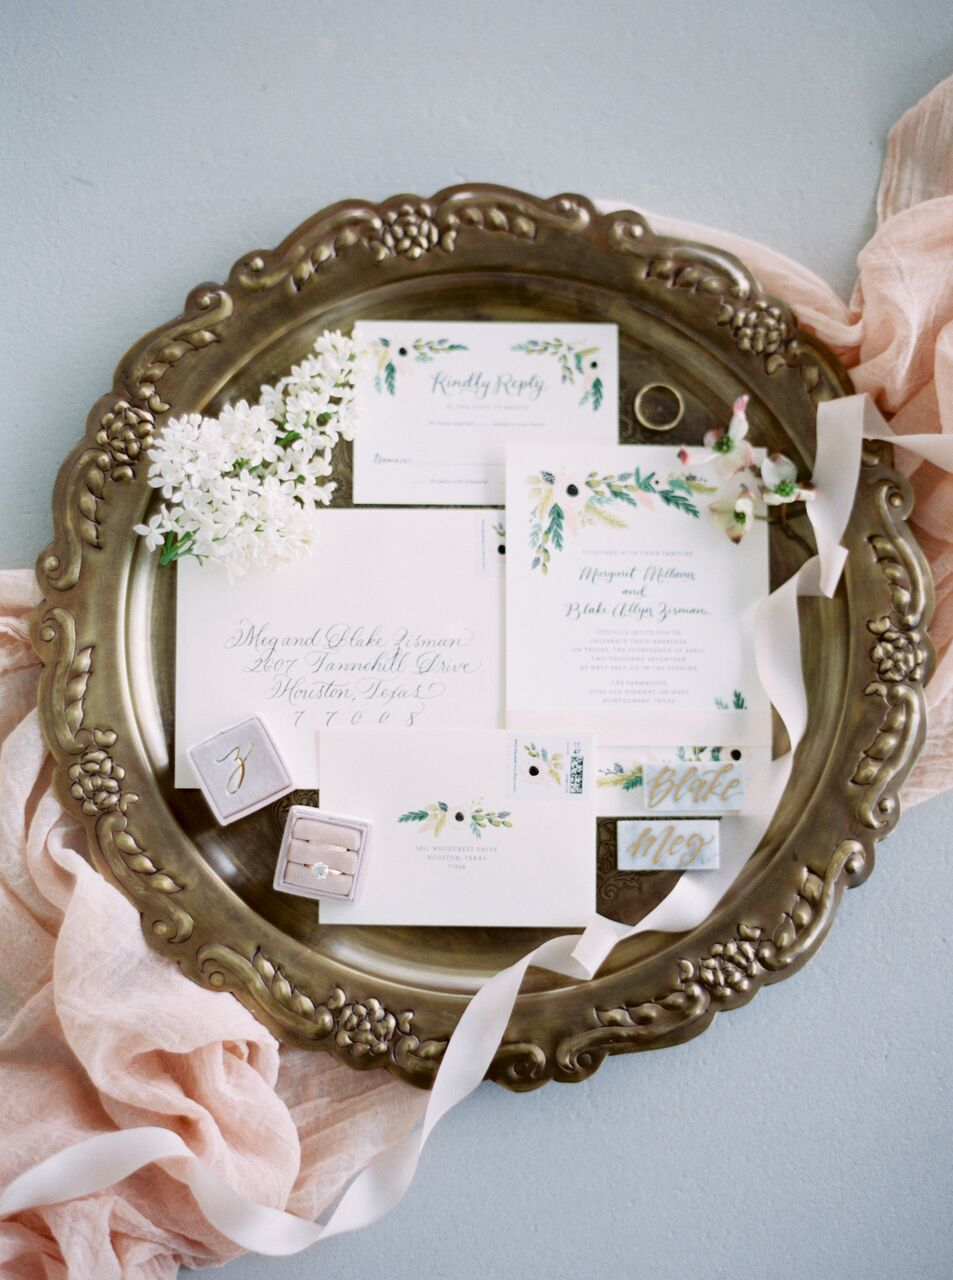 From Start to Finish: This Is How Wedding Invitations Are Made